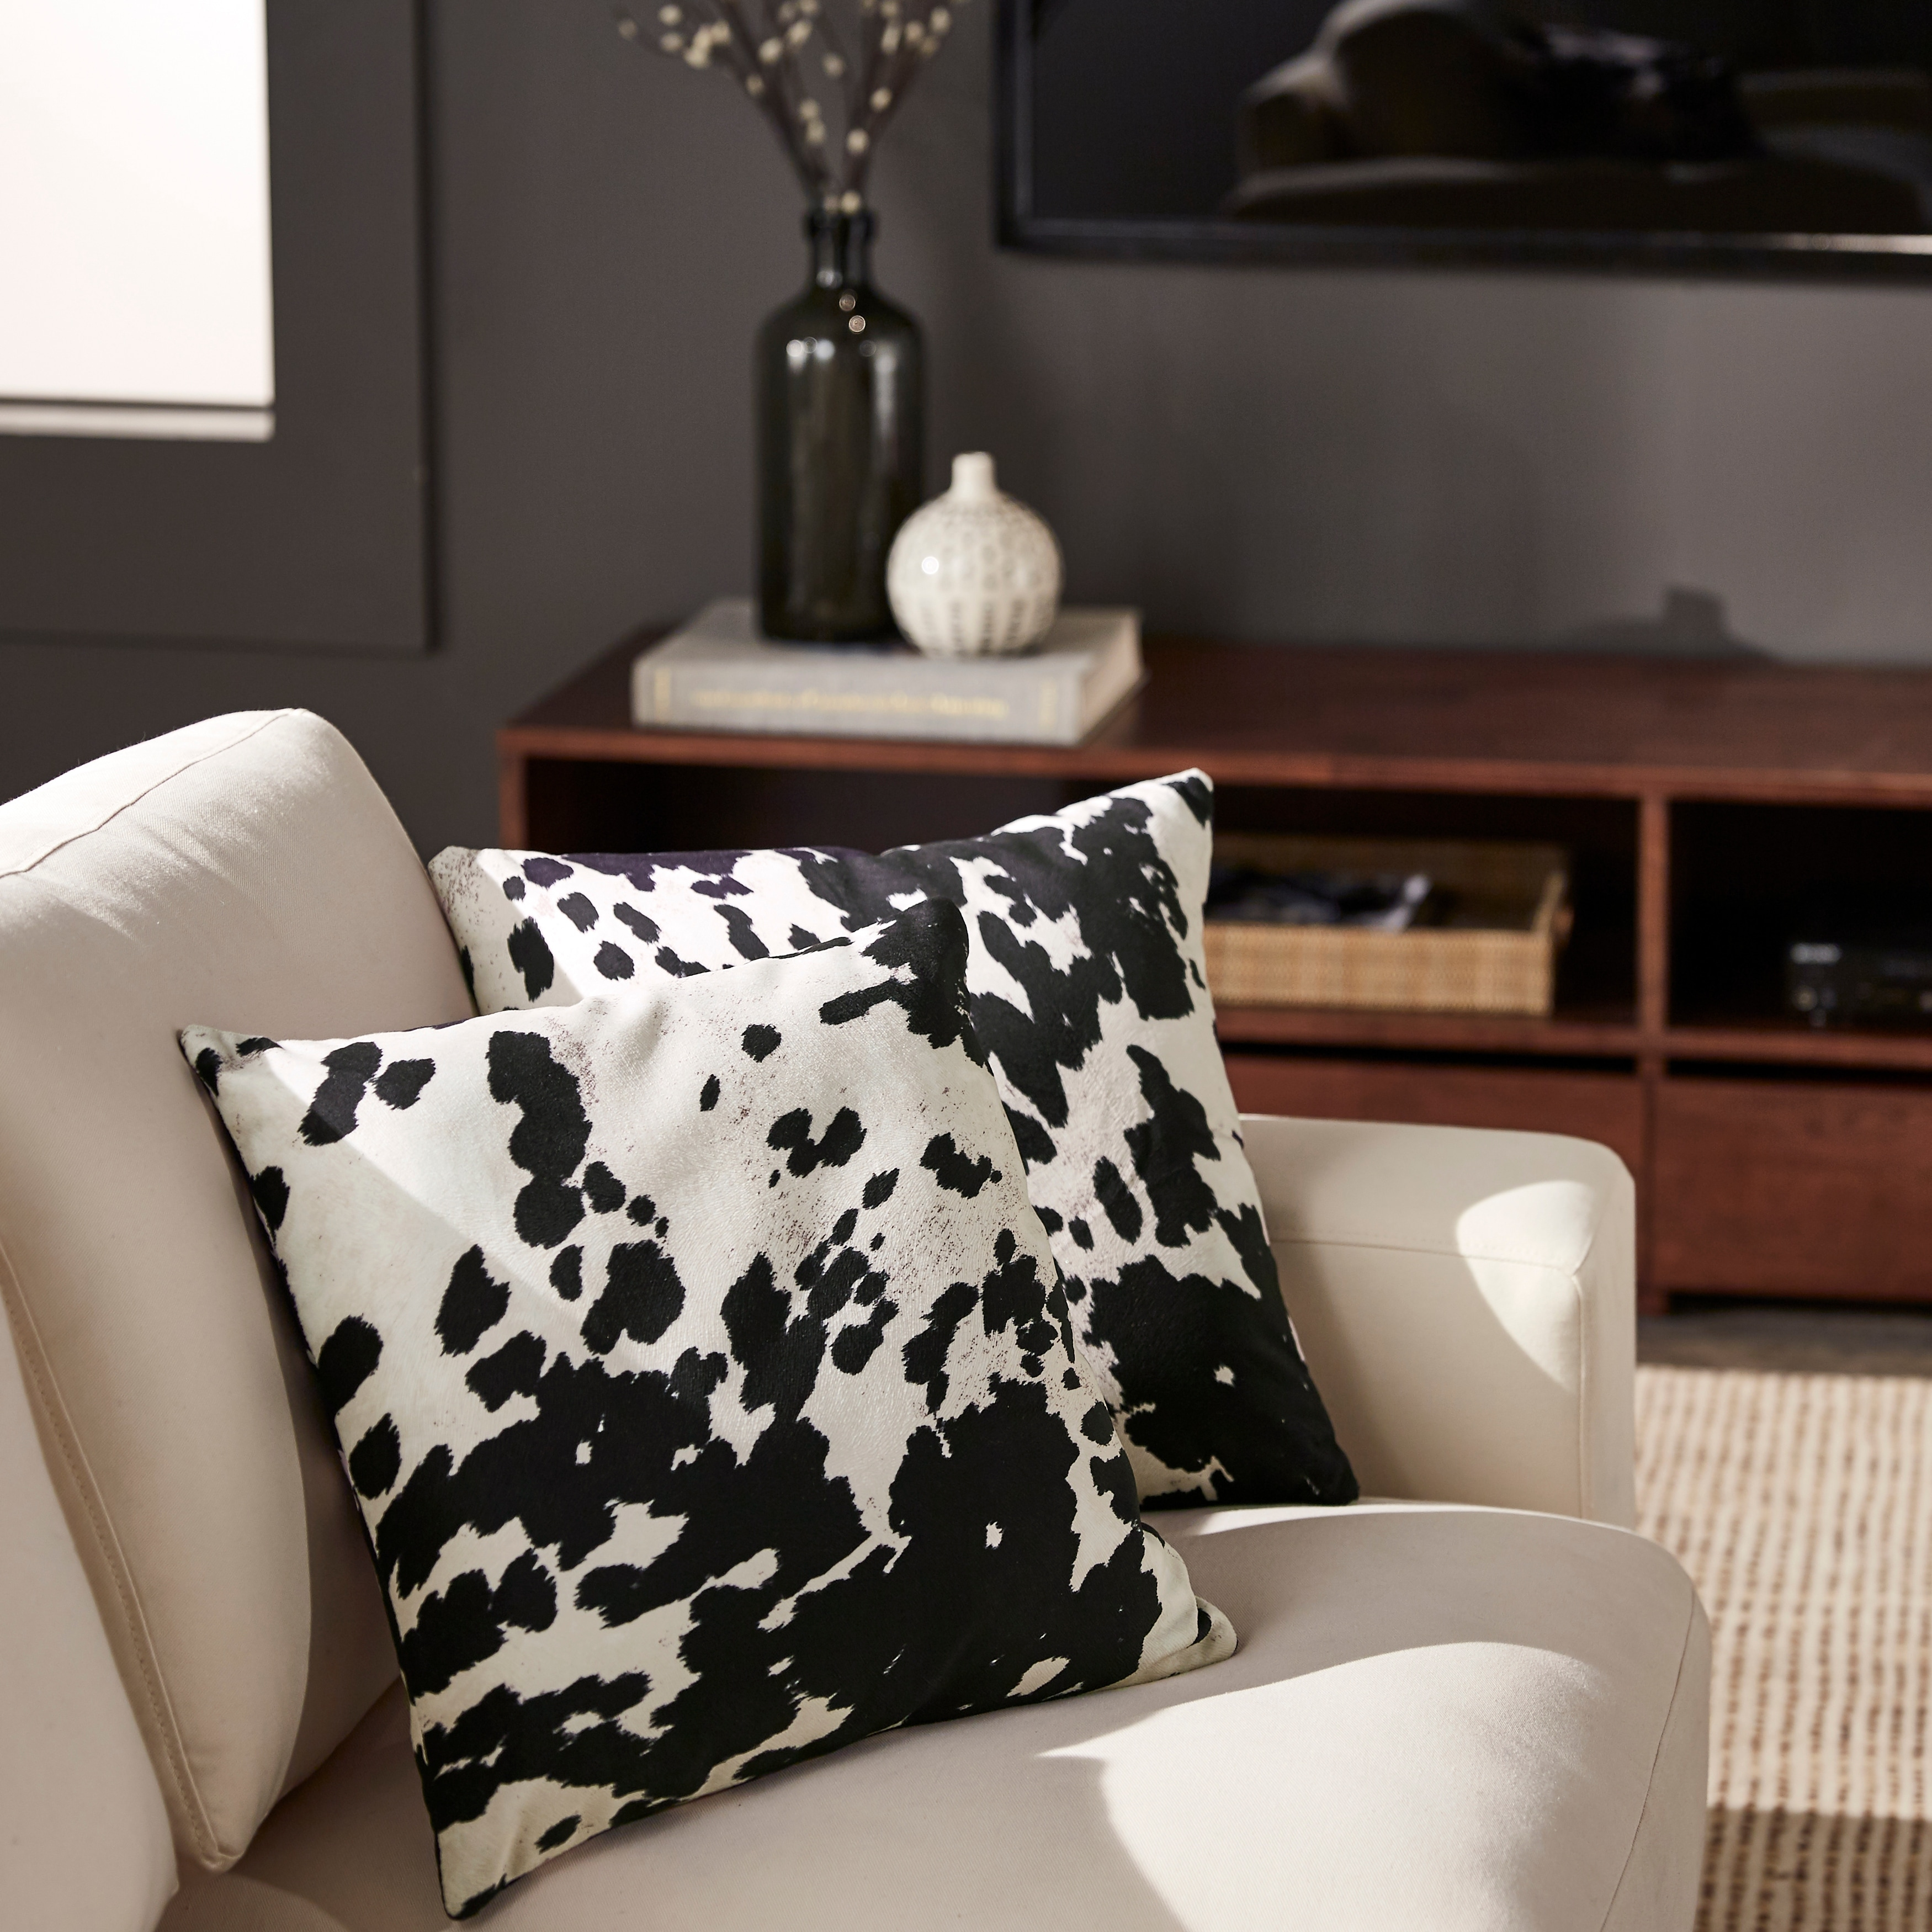 Black And White Decorative Pillows  from ak1.ostkcdn.com